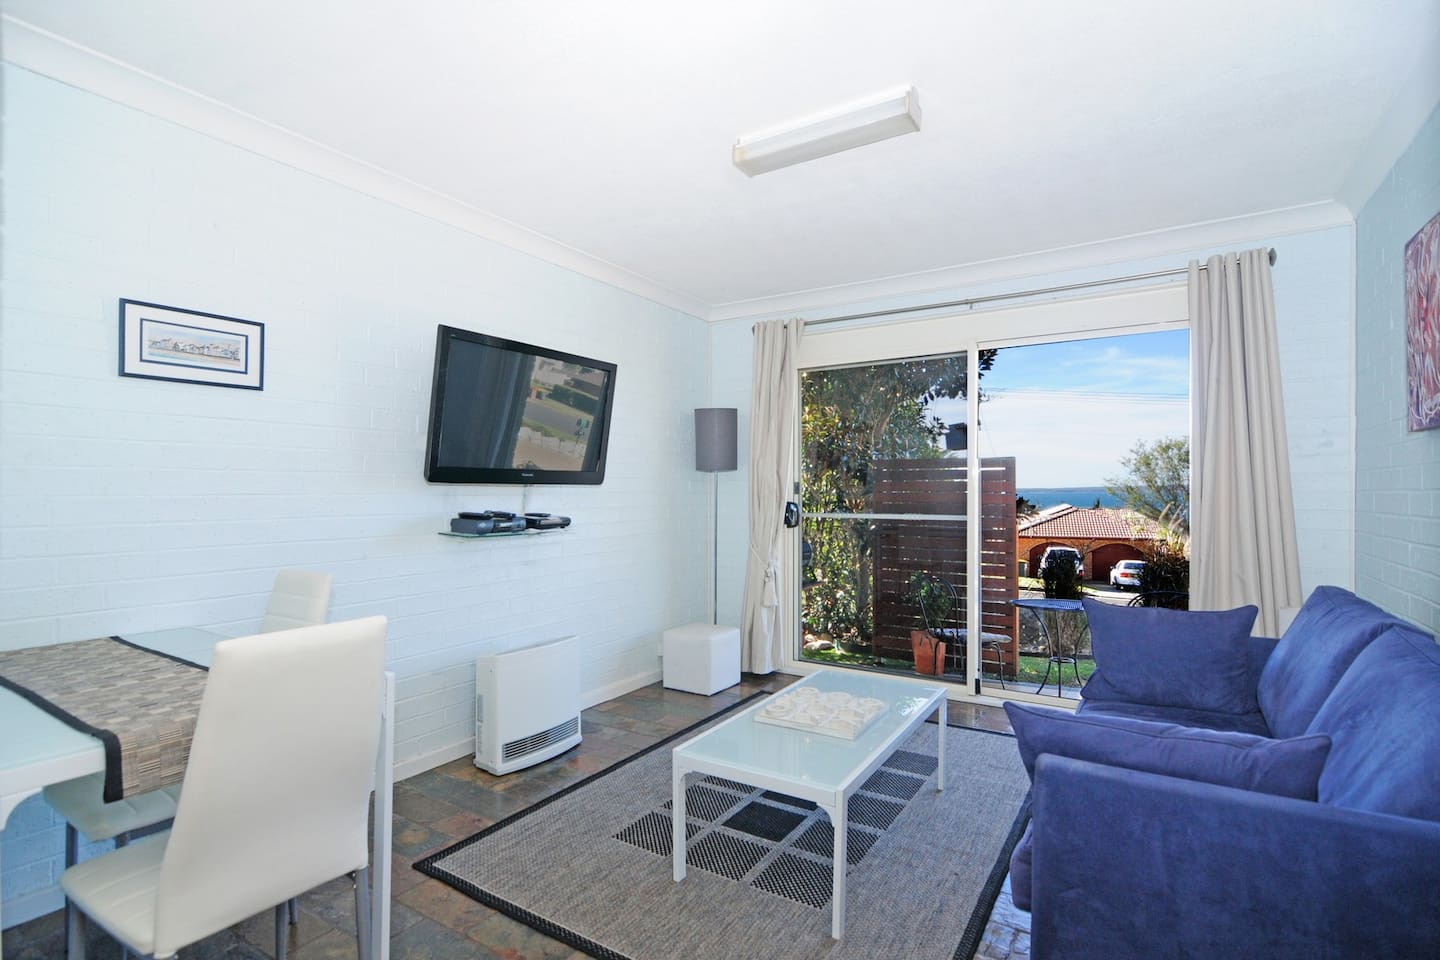 Modern, clean and relaxing with nice privacy for guests, and a large flat screen TV with Foxtel and DVD